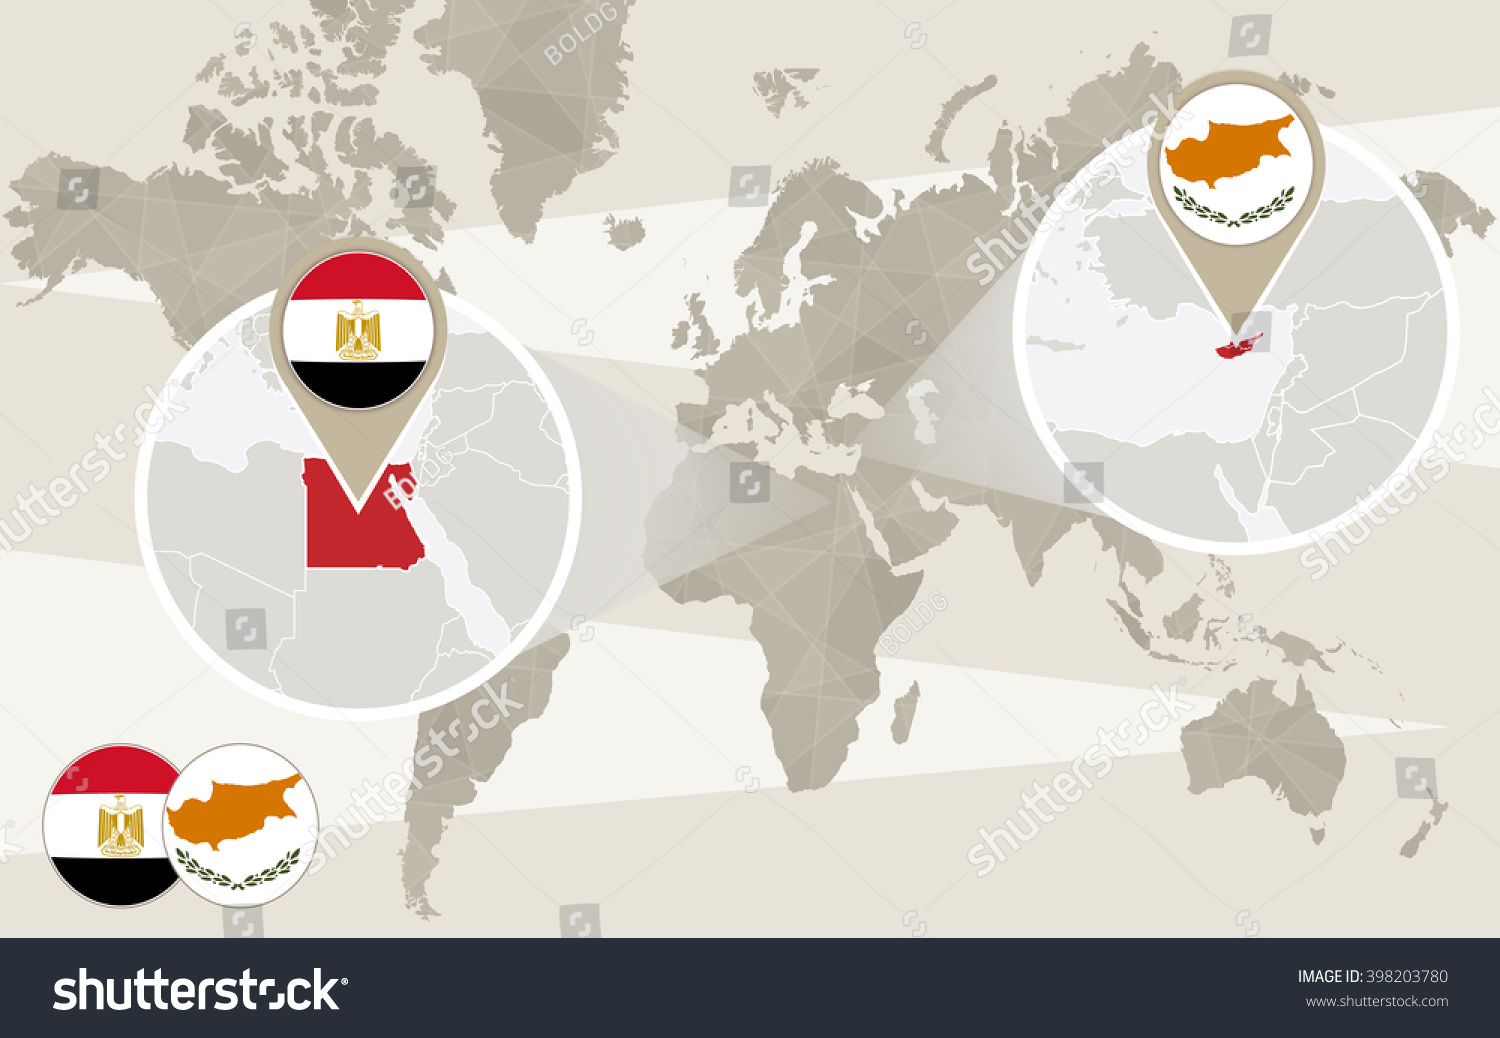 World map zoom on Egypt Cyprus Hijack